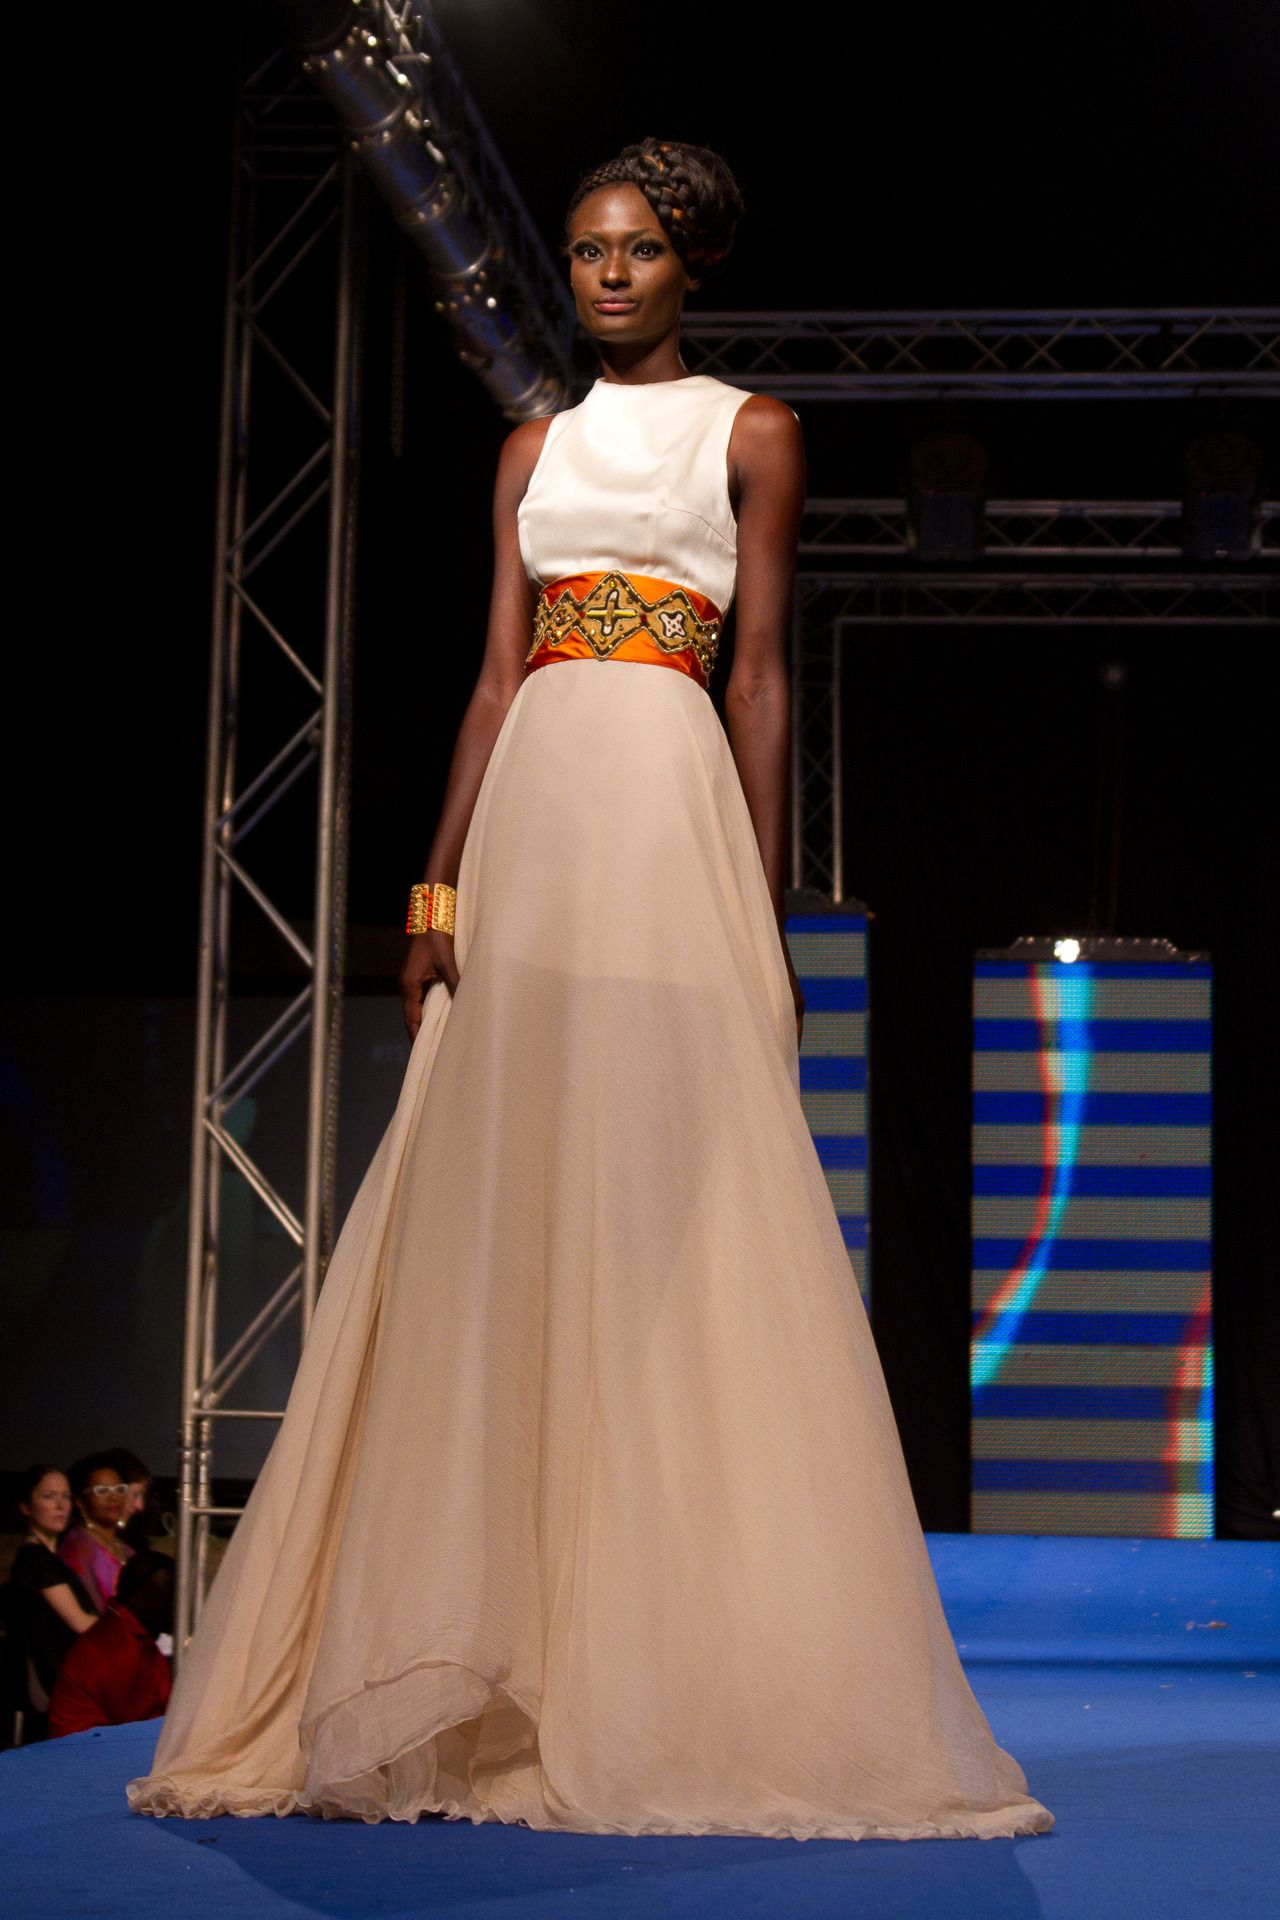 Dress by elie kuamé young designer from ivory coast and lebanon